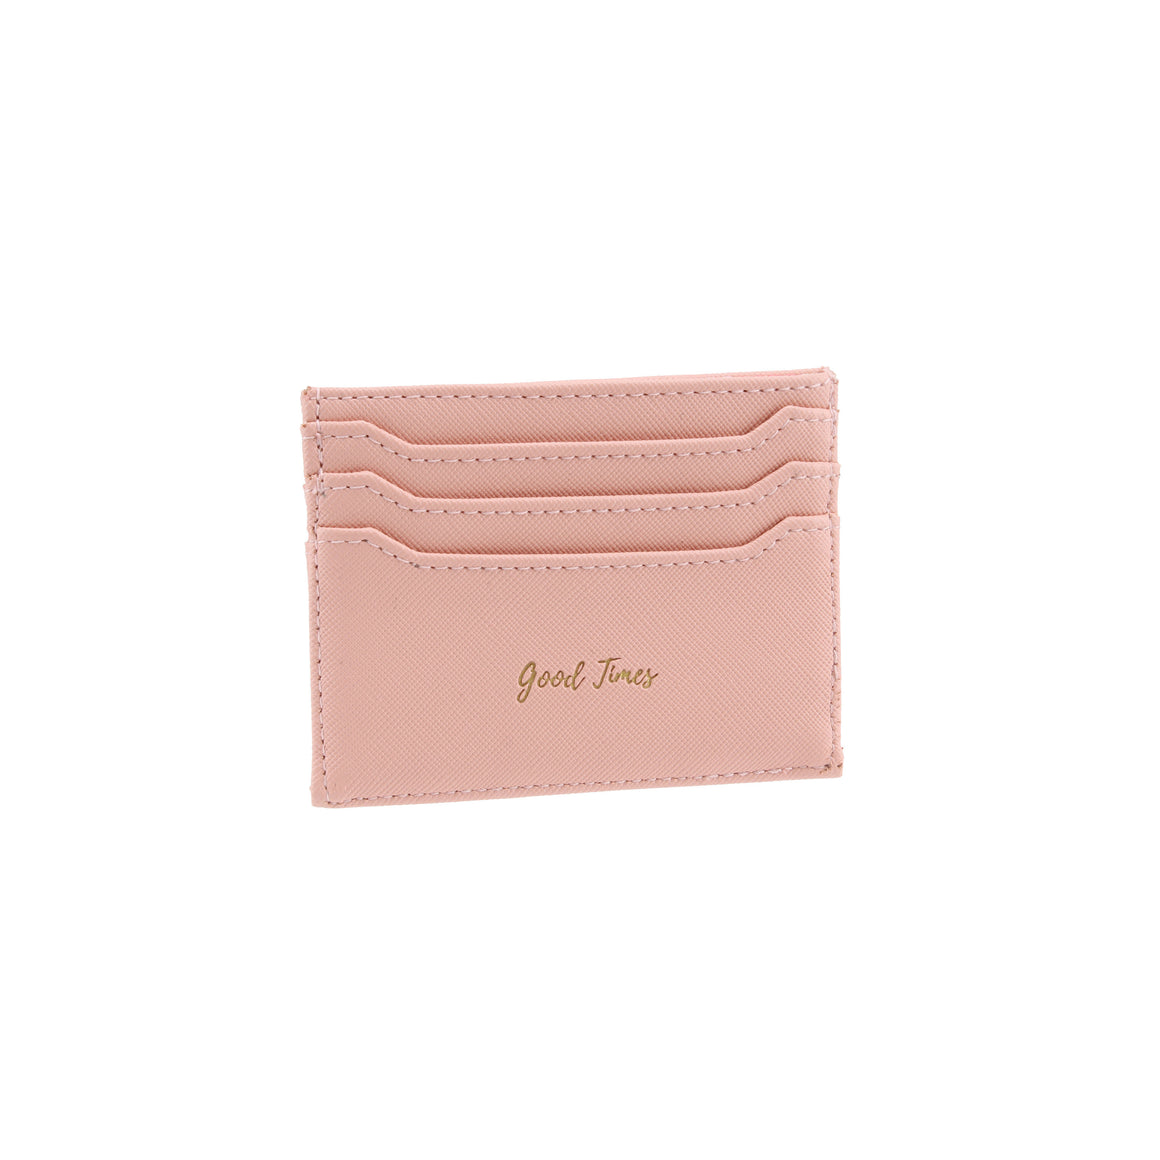 Willow & Rose 'Good Times' Coral Card Holder - The Love Trees